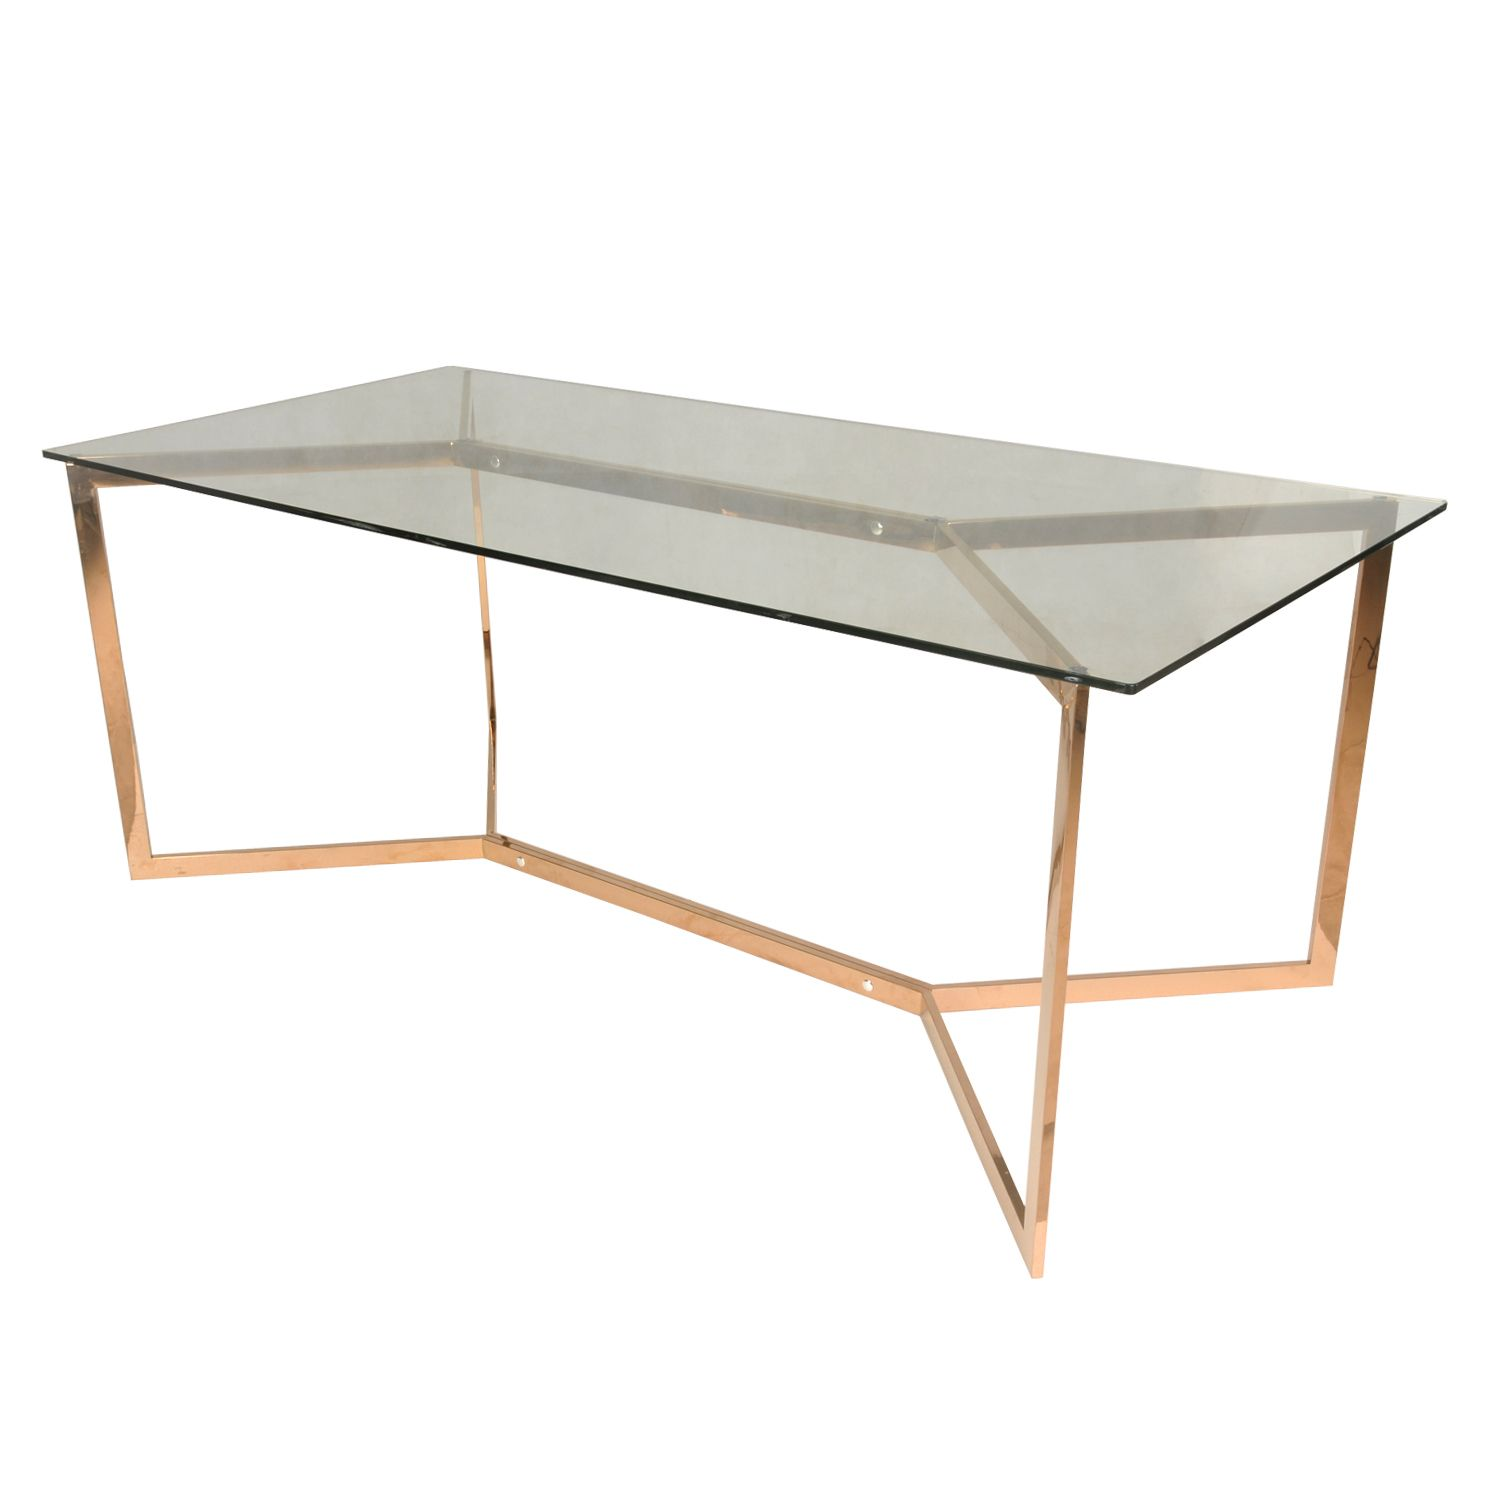 campbell kd dining table in rose gold frames - npd | dining in